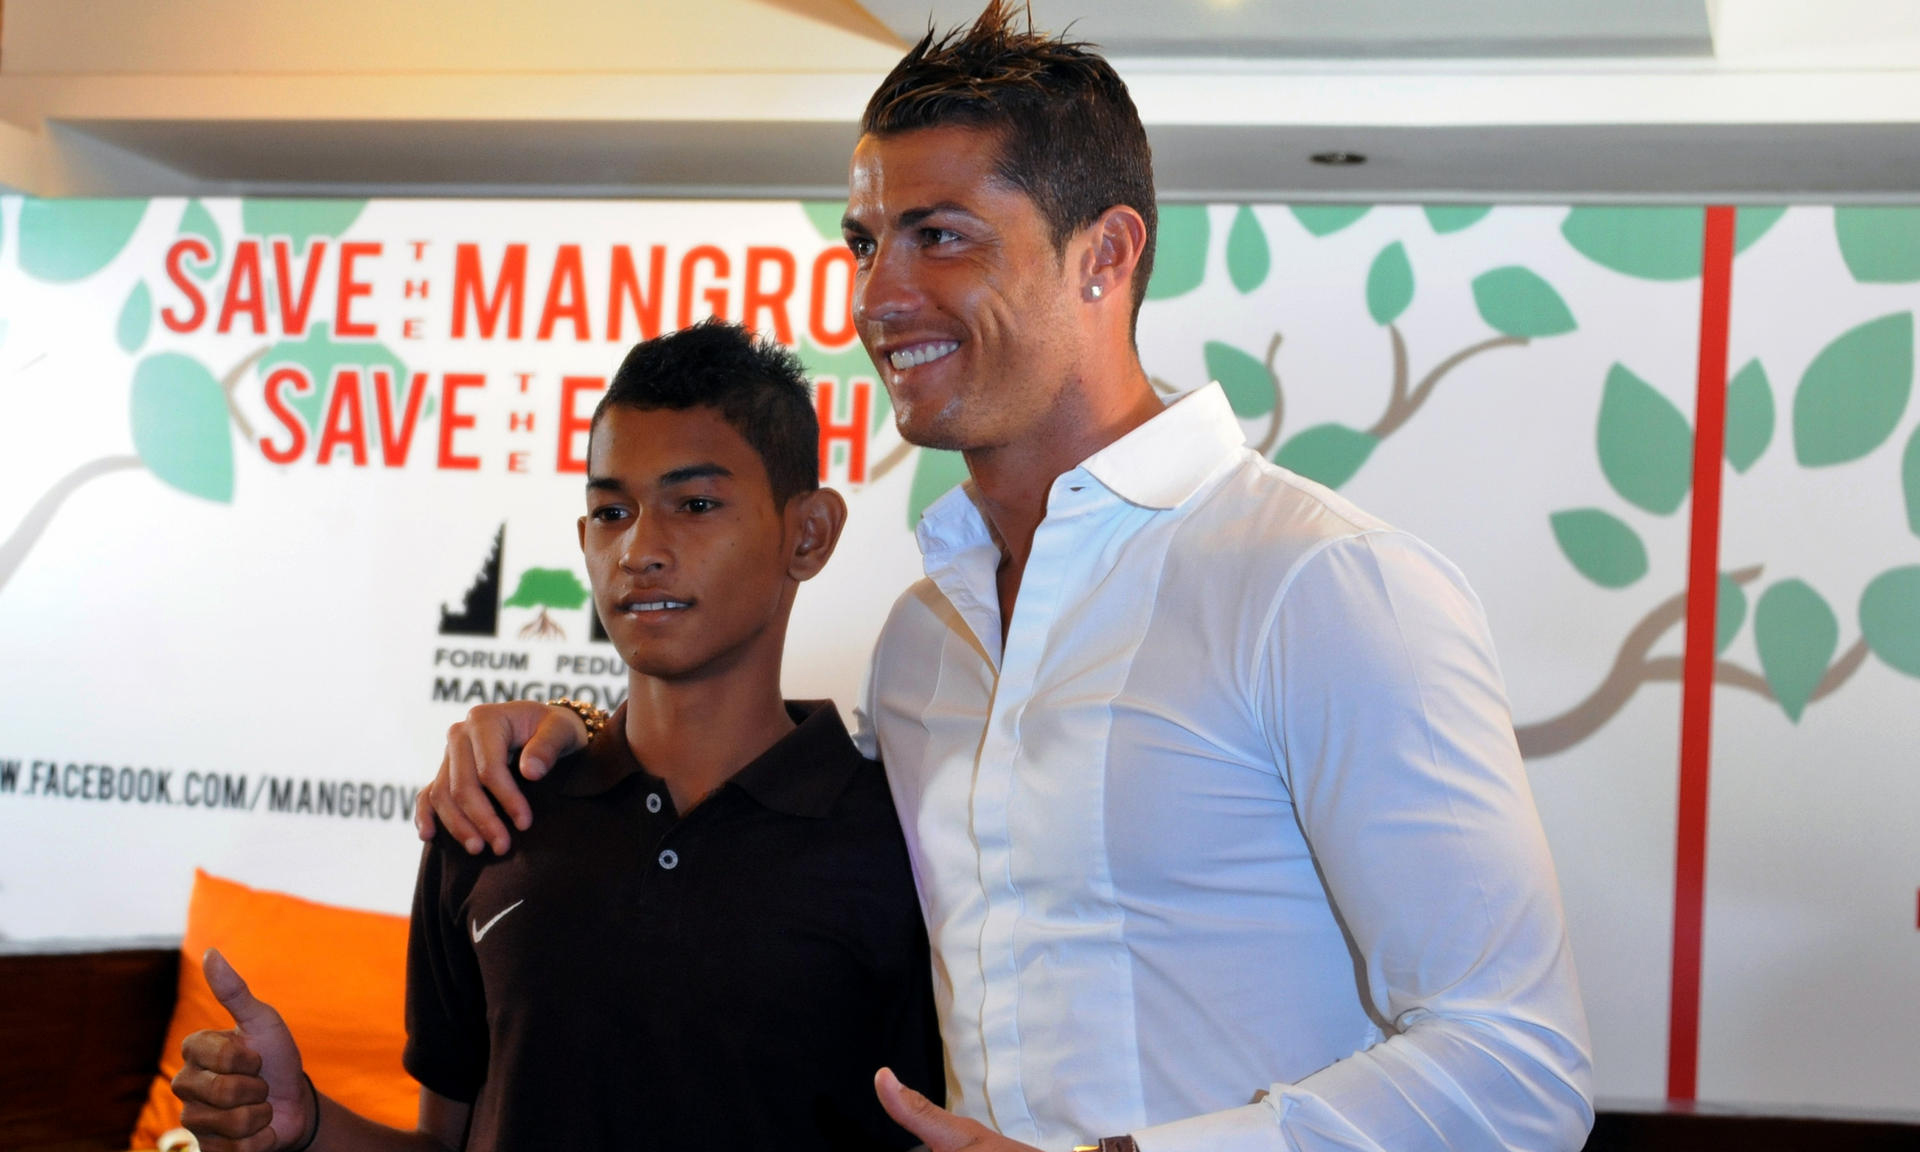 Football player Christiano Ronaldo (R) is reunited with 16-year-old Martunis (L), an Indonesian survivor of the deadly 2004 Aceh tsunami who the Real Madrid star met in 2005 during a mission to assist tsunami victims and gave his family financial assistance. Ronaldo participated in a conservation movement in Indonesia aiming to raise public awareness of the importance of mangrove forests.  AFP PHOTO/SONNY TUMBELAKA